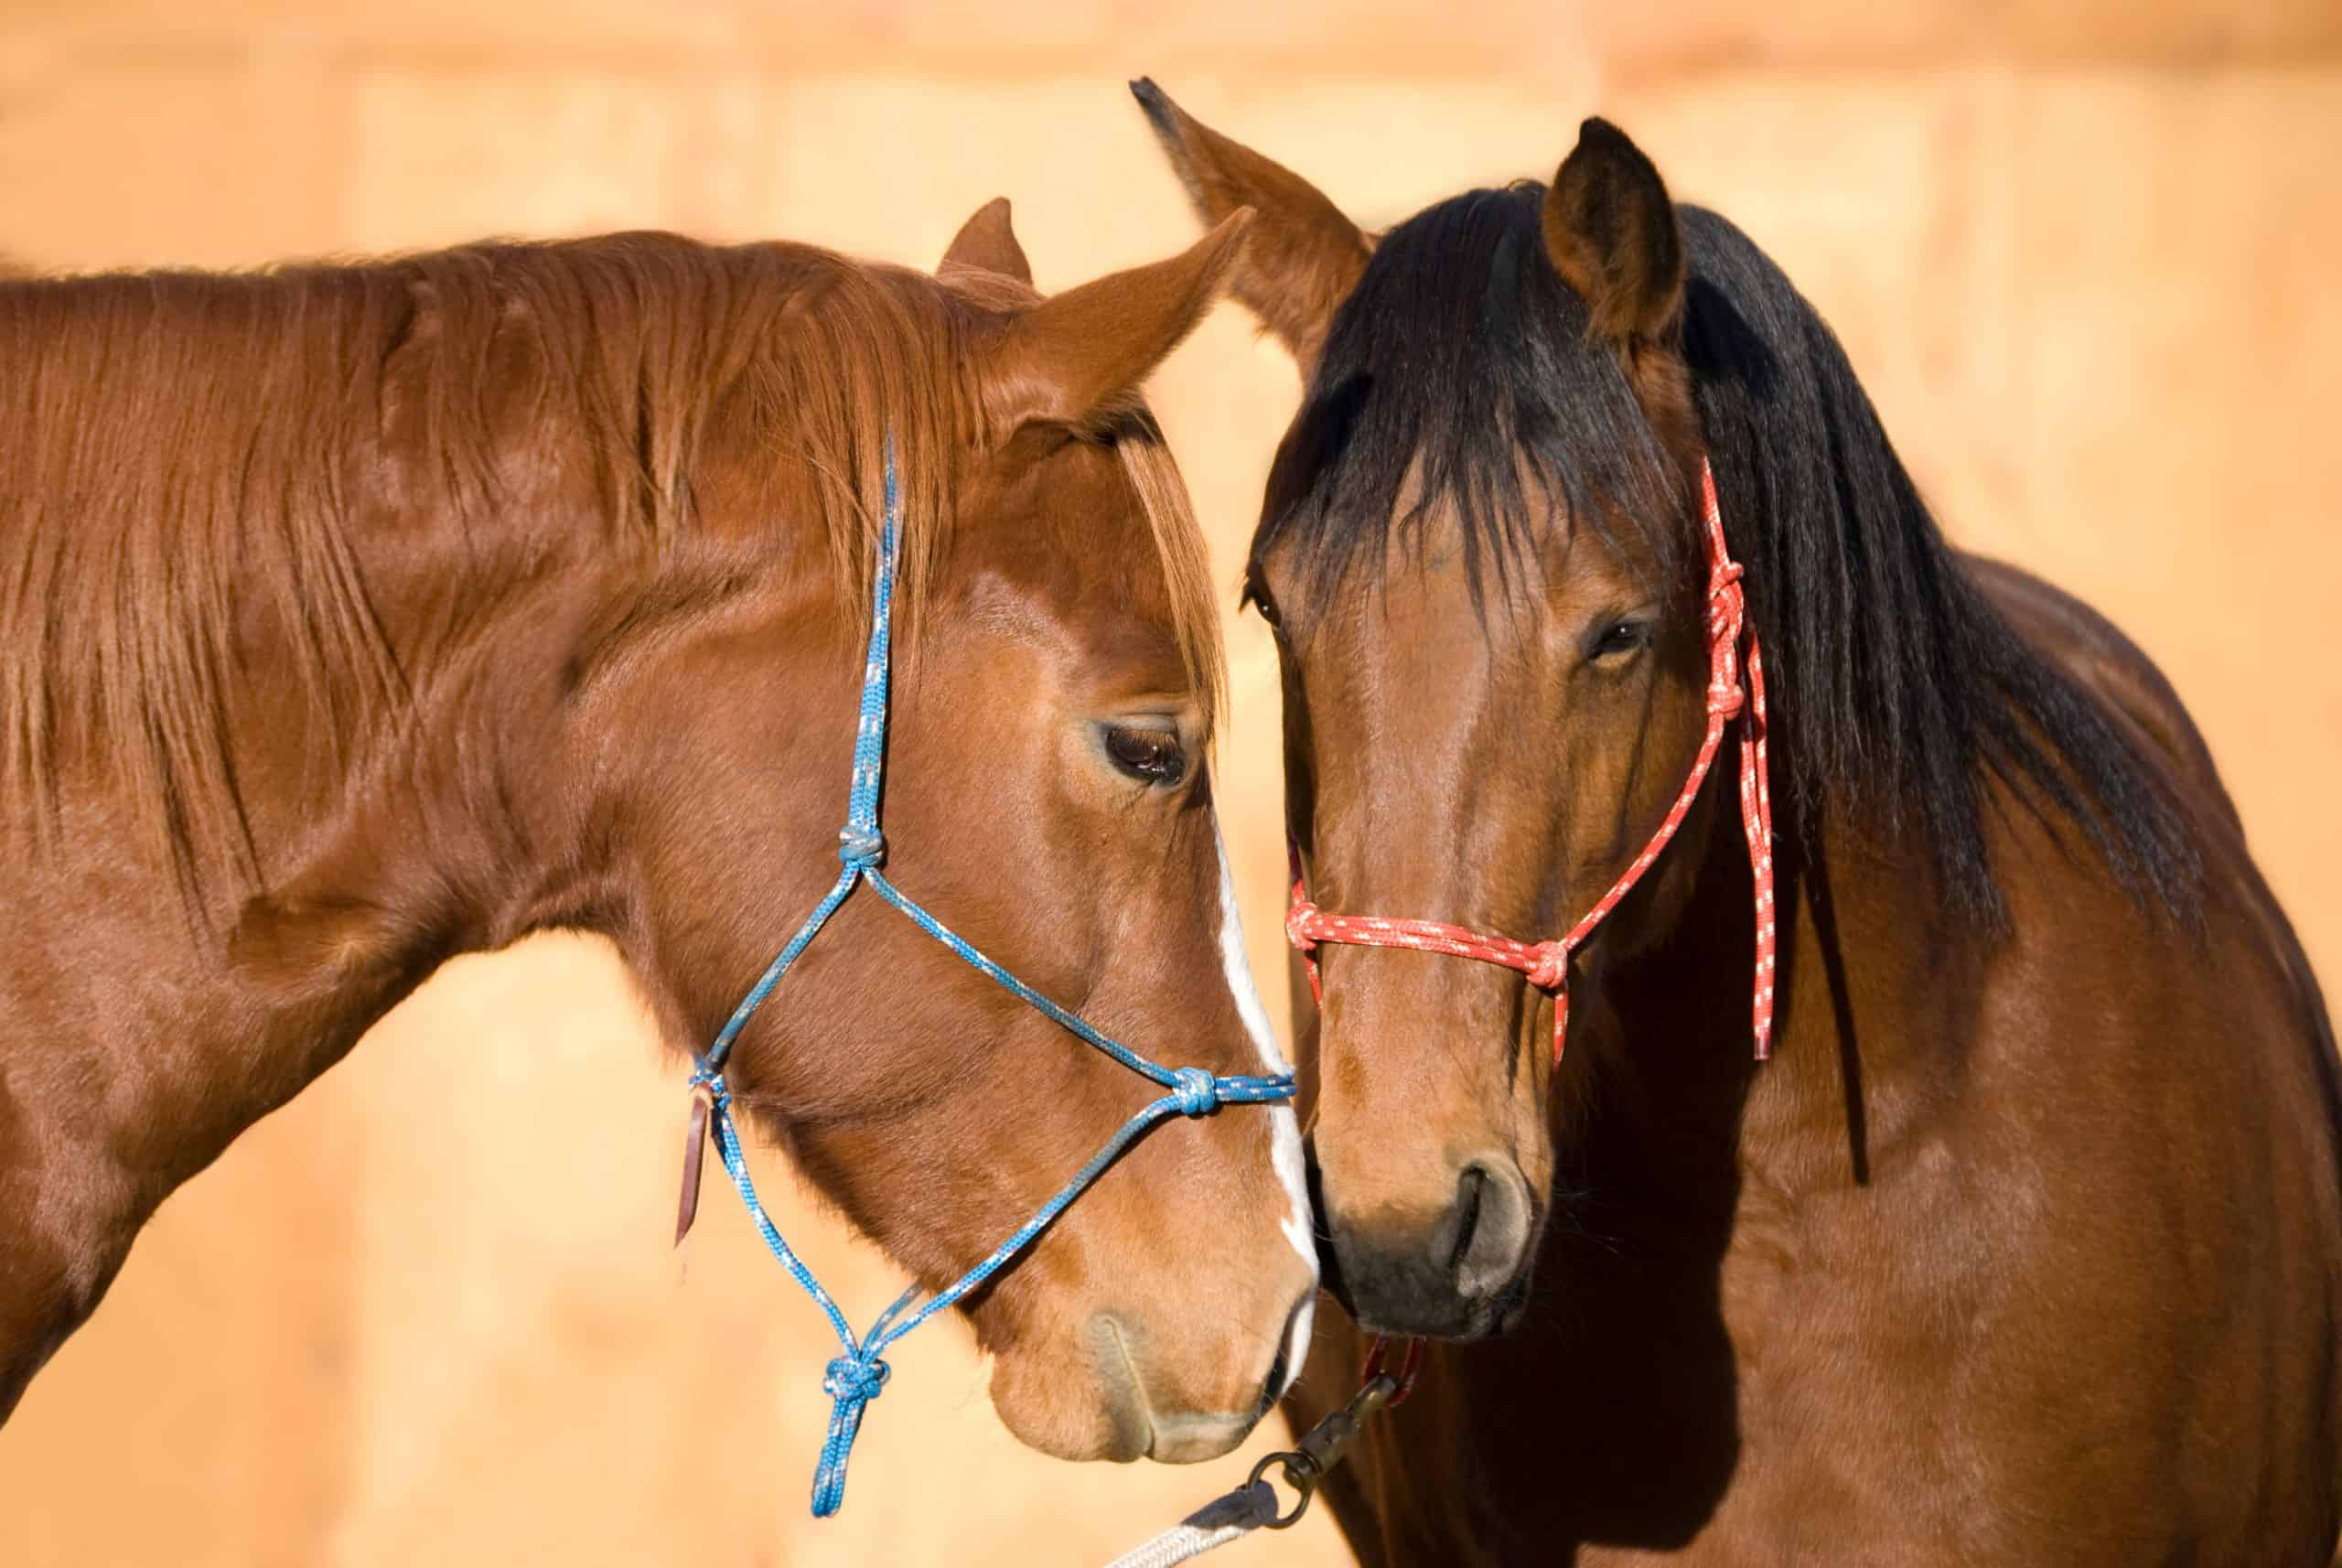 A sorrel (chestnut) horse and a bay horse greeting each other with interest and affection.